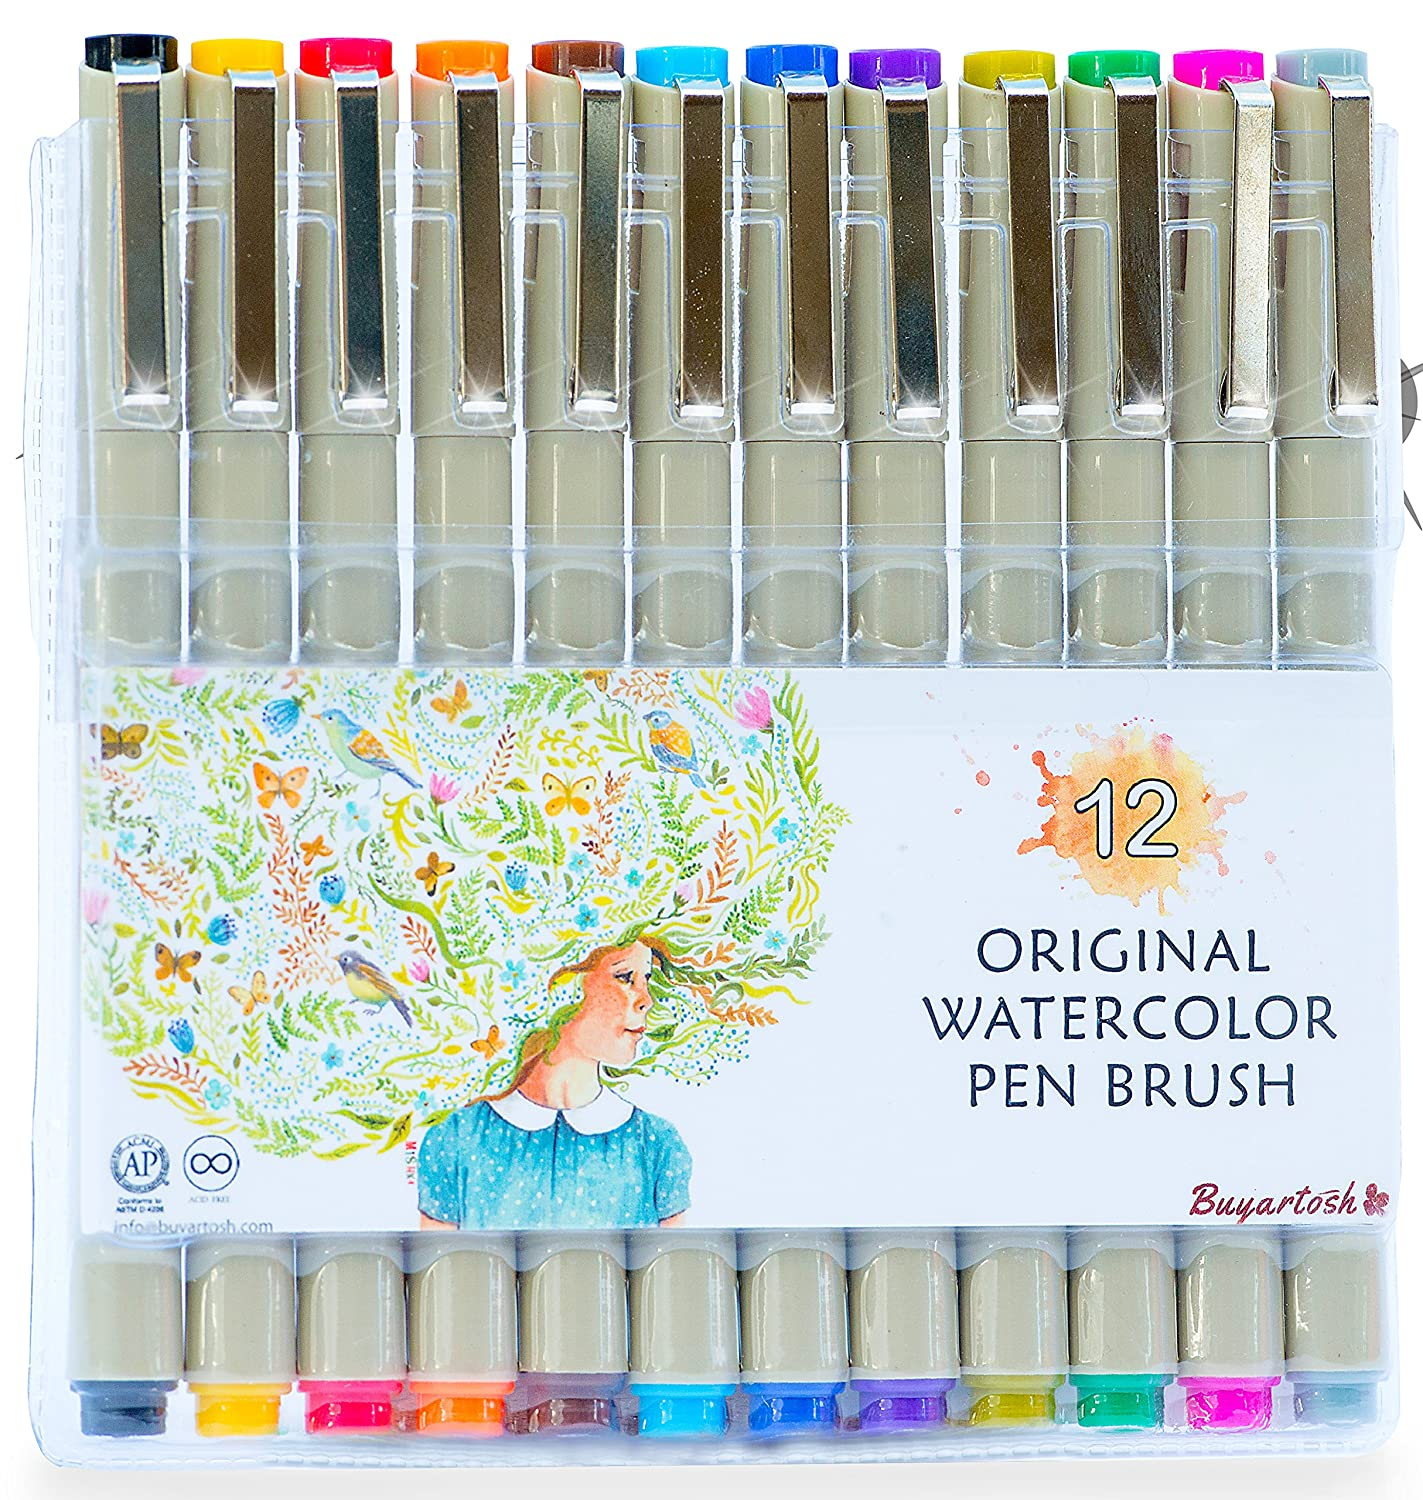 watercolor Brush Pens by Buyartosh: 12 Watercolor pen & Markers with Flexible Tips and Caps plus Case and Ebook for Coloring, Writing, Sketching, and Drawing 6225113